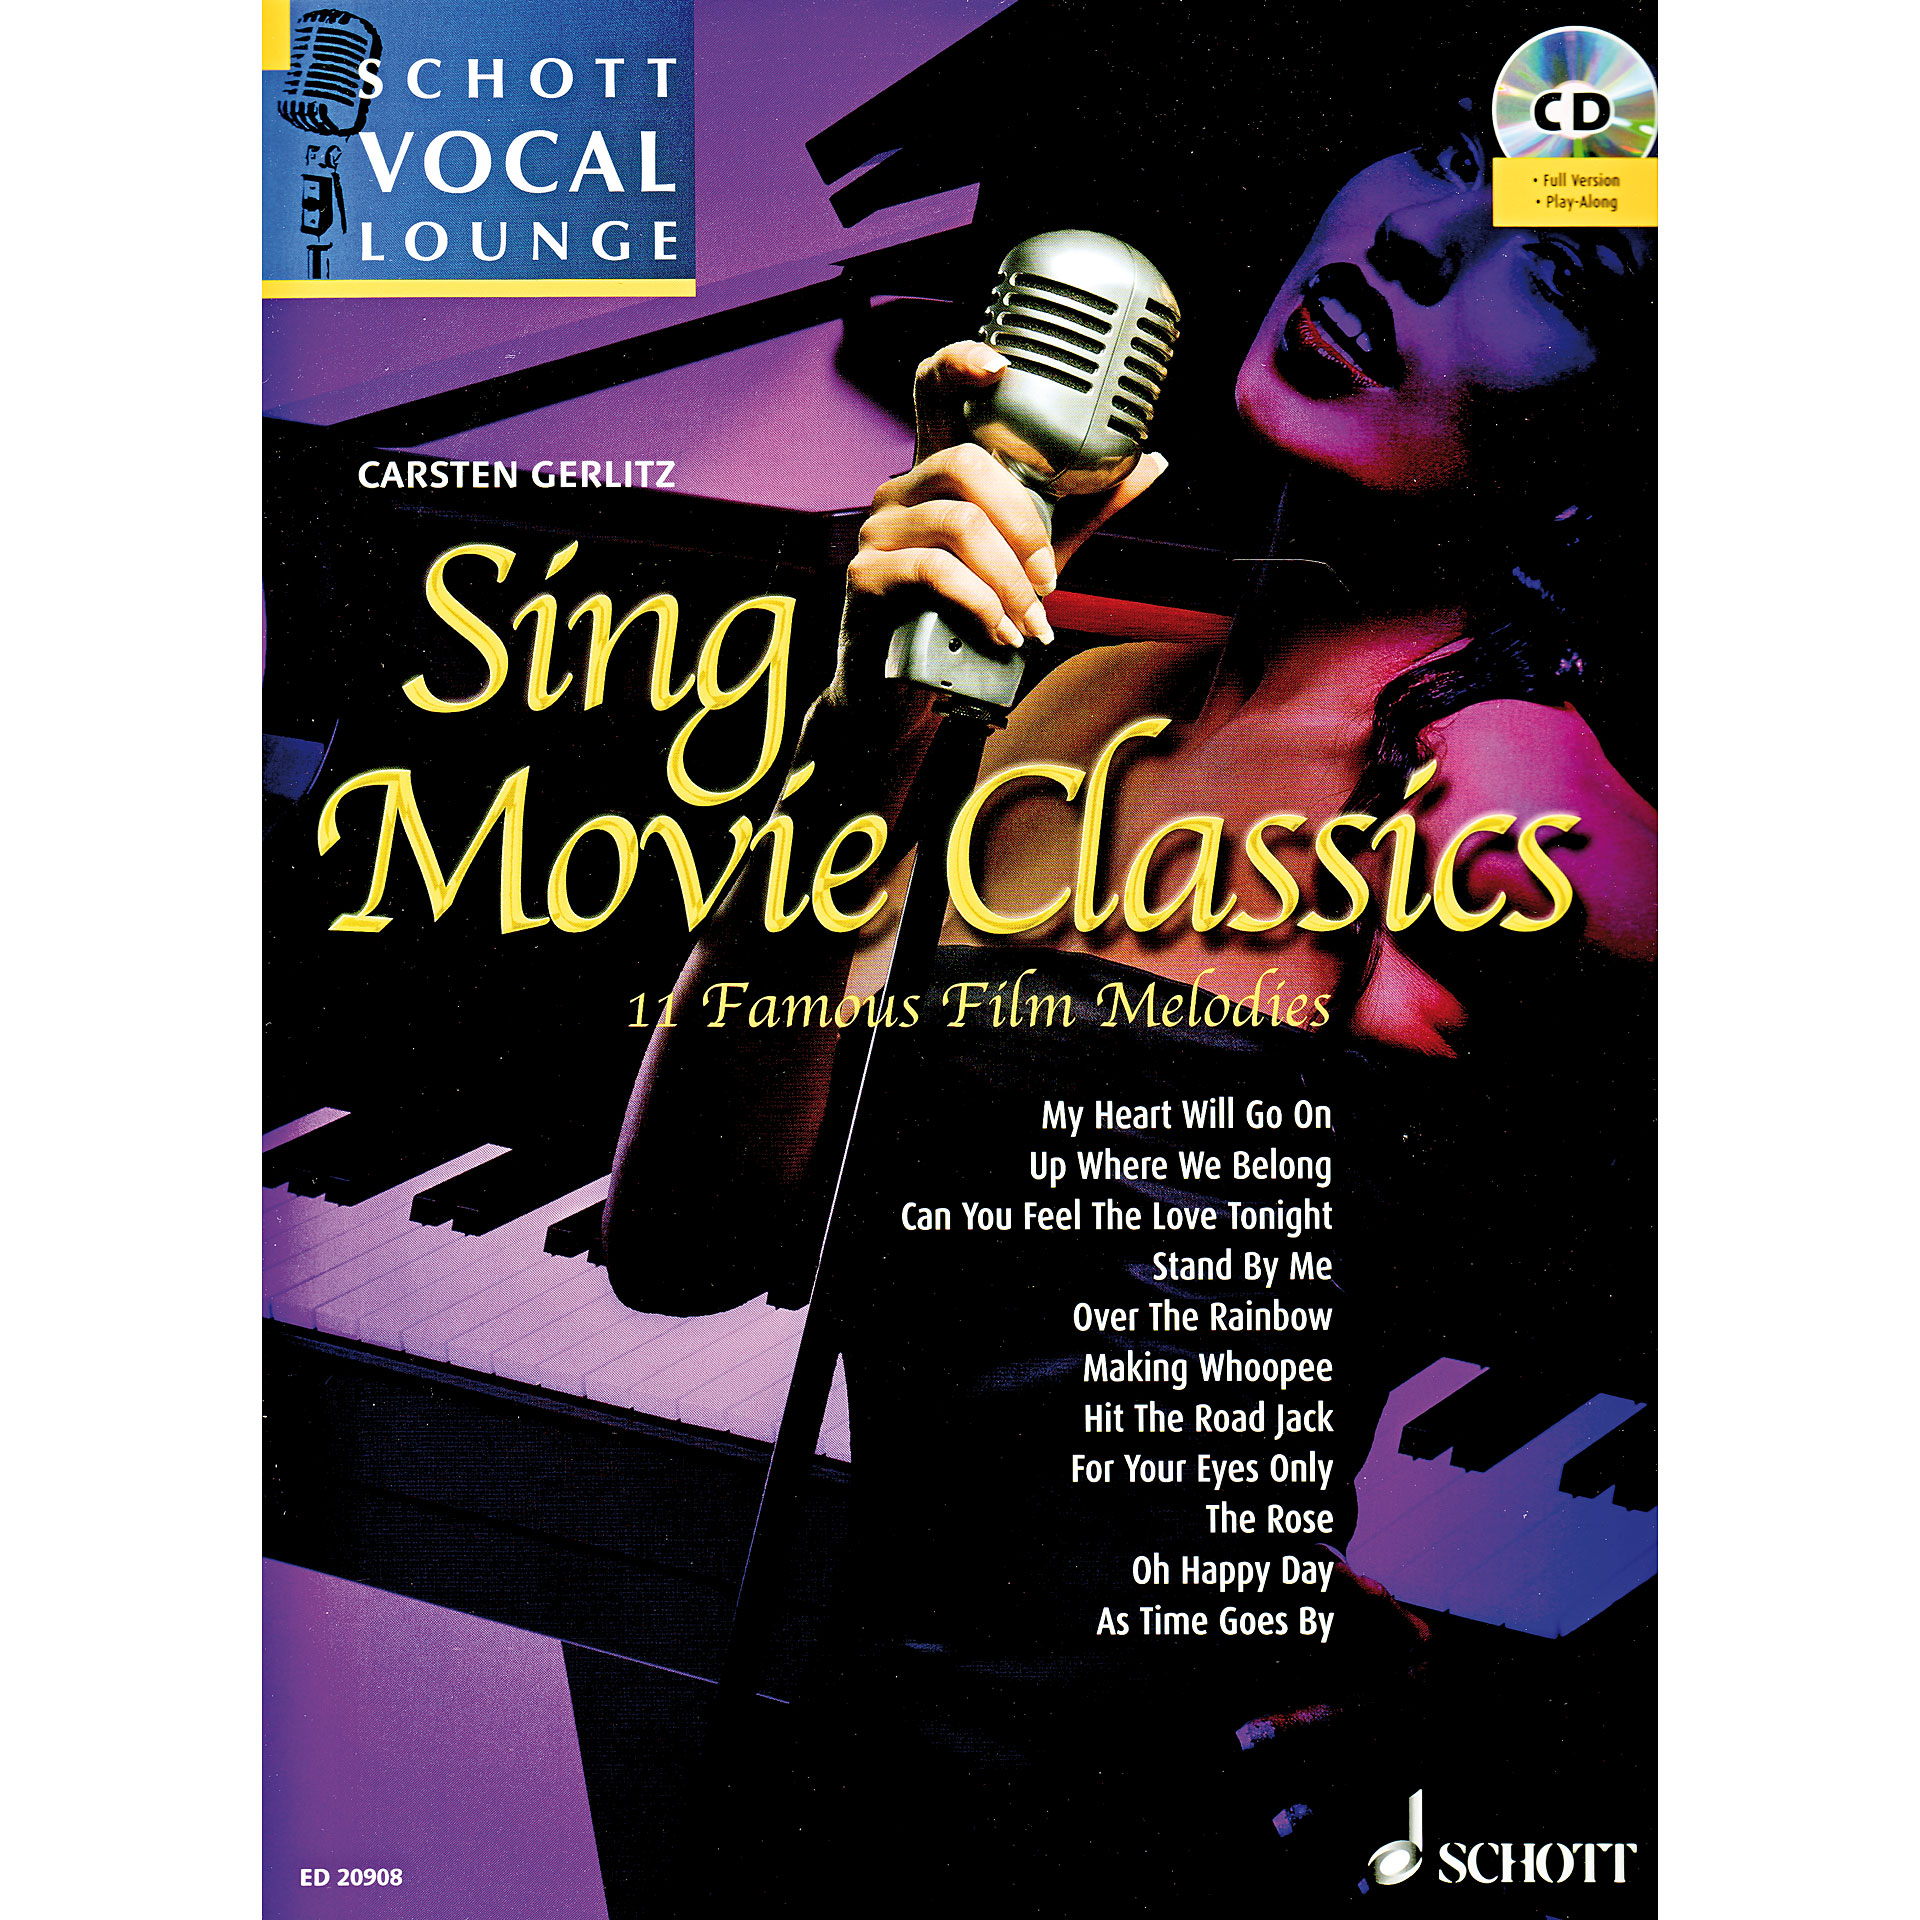 Schott schott vocal lounge sing movie classics notenbuch for Classic house vocals acapella